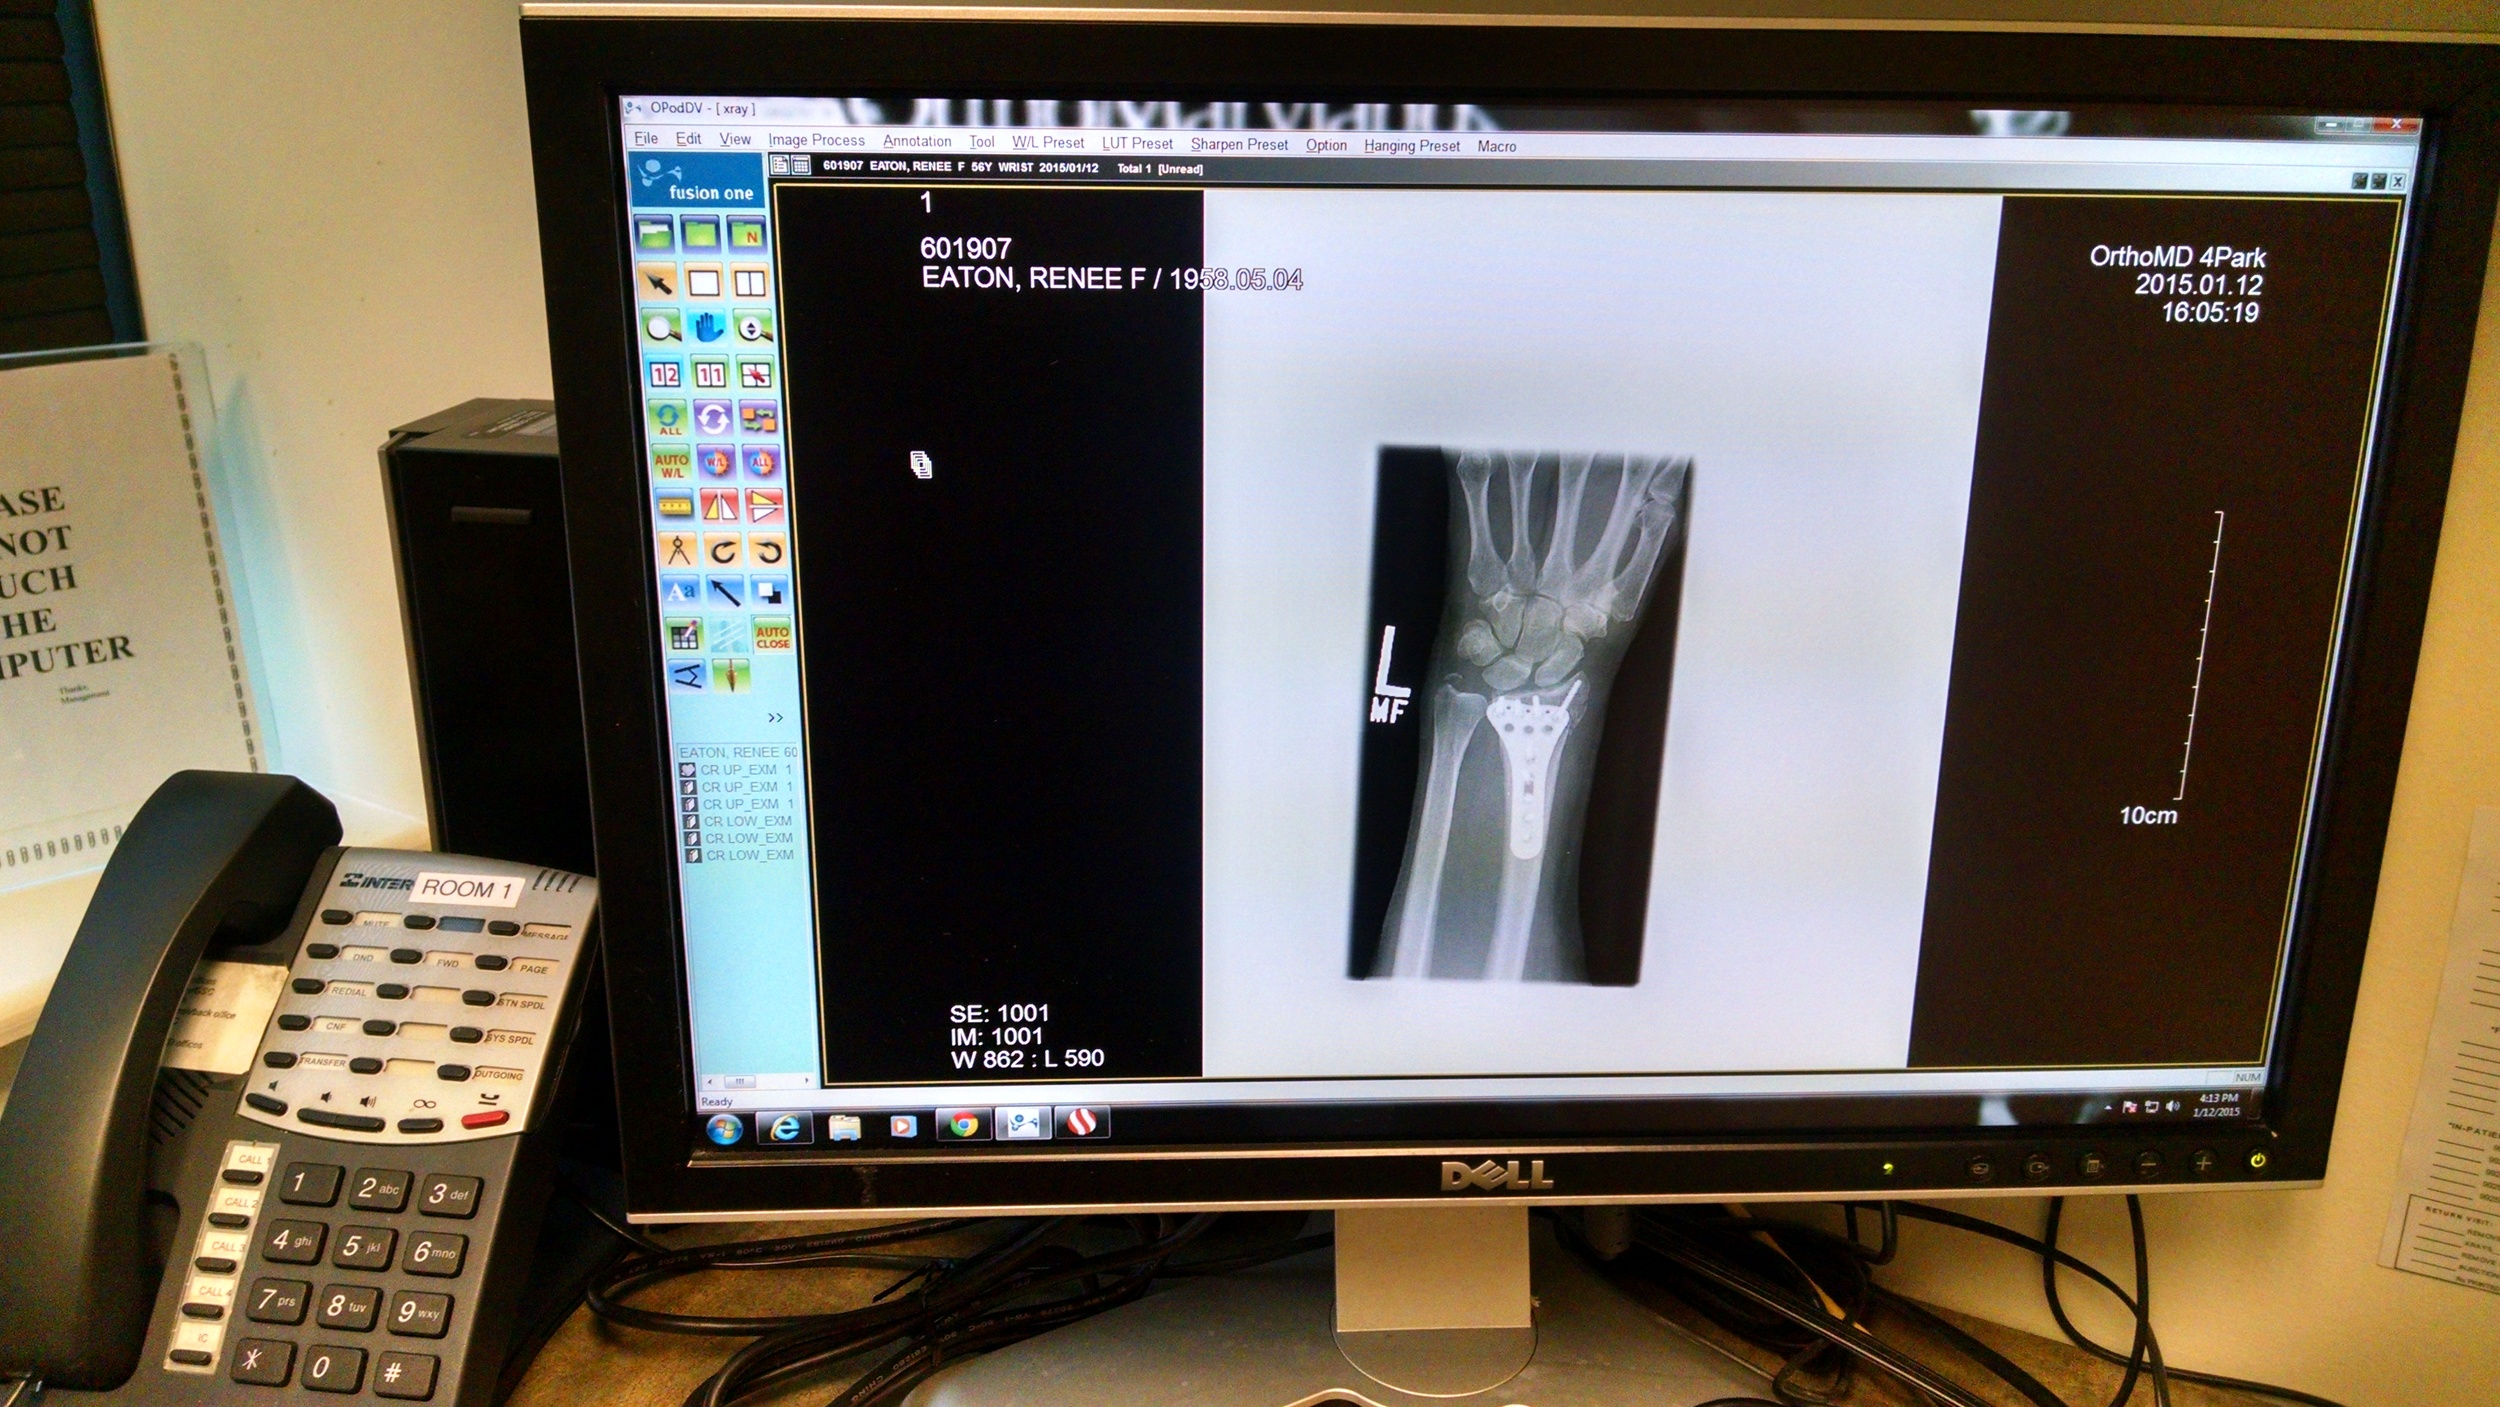 My post-op wrist via traditional Xray image.